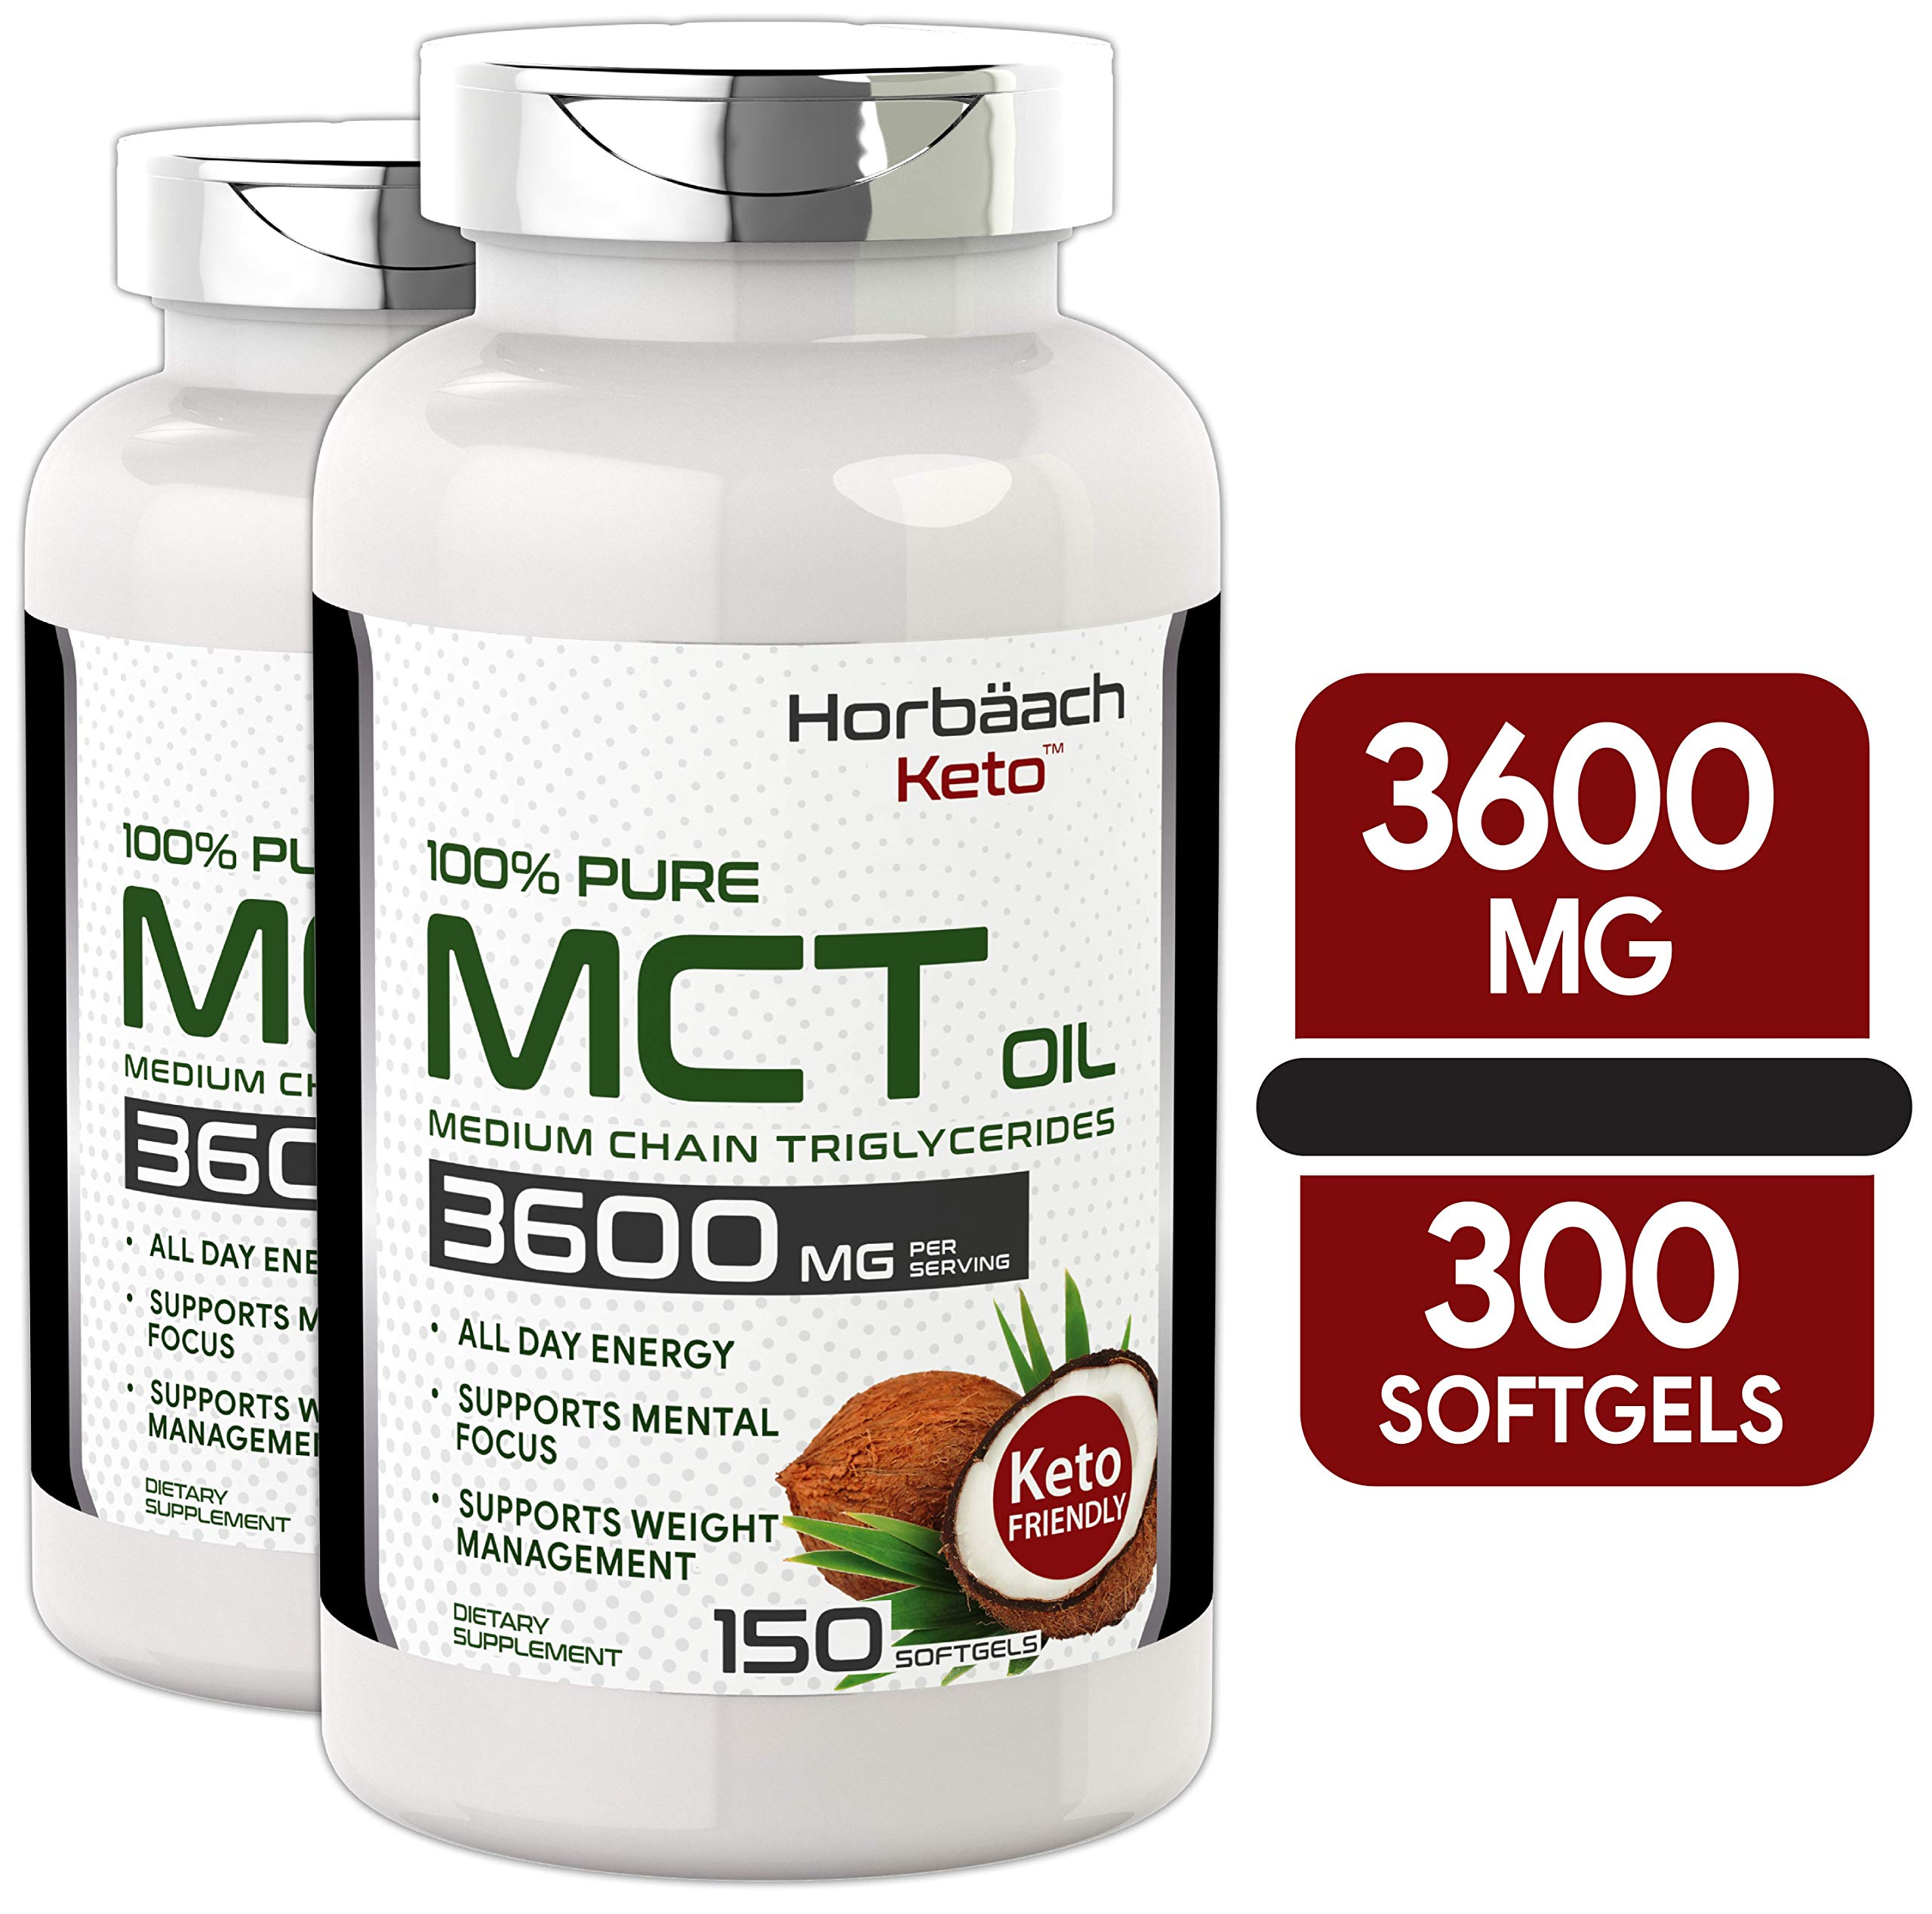 Keto MCT Oil Capsules   3600 mg 300 Softgels   Coconut Oil Pills   Twin Pack   Non-GMO, Gluten Free   by Horbaach